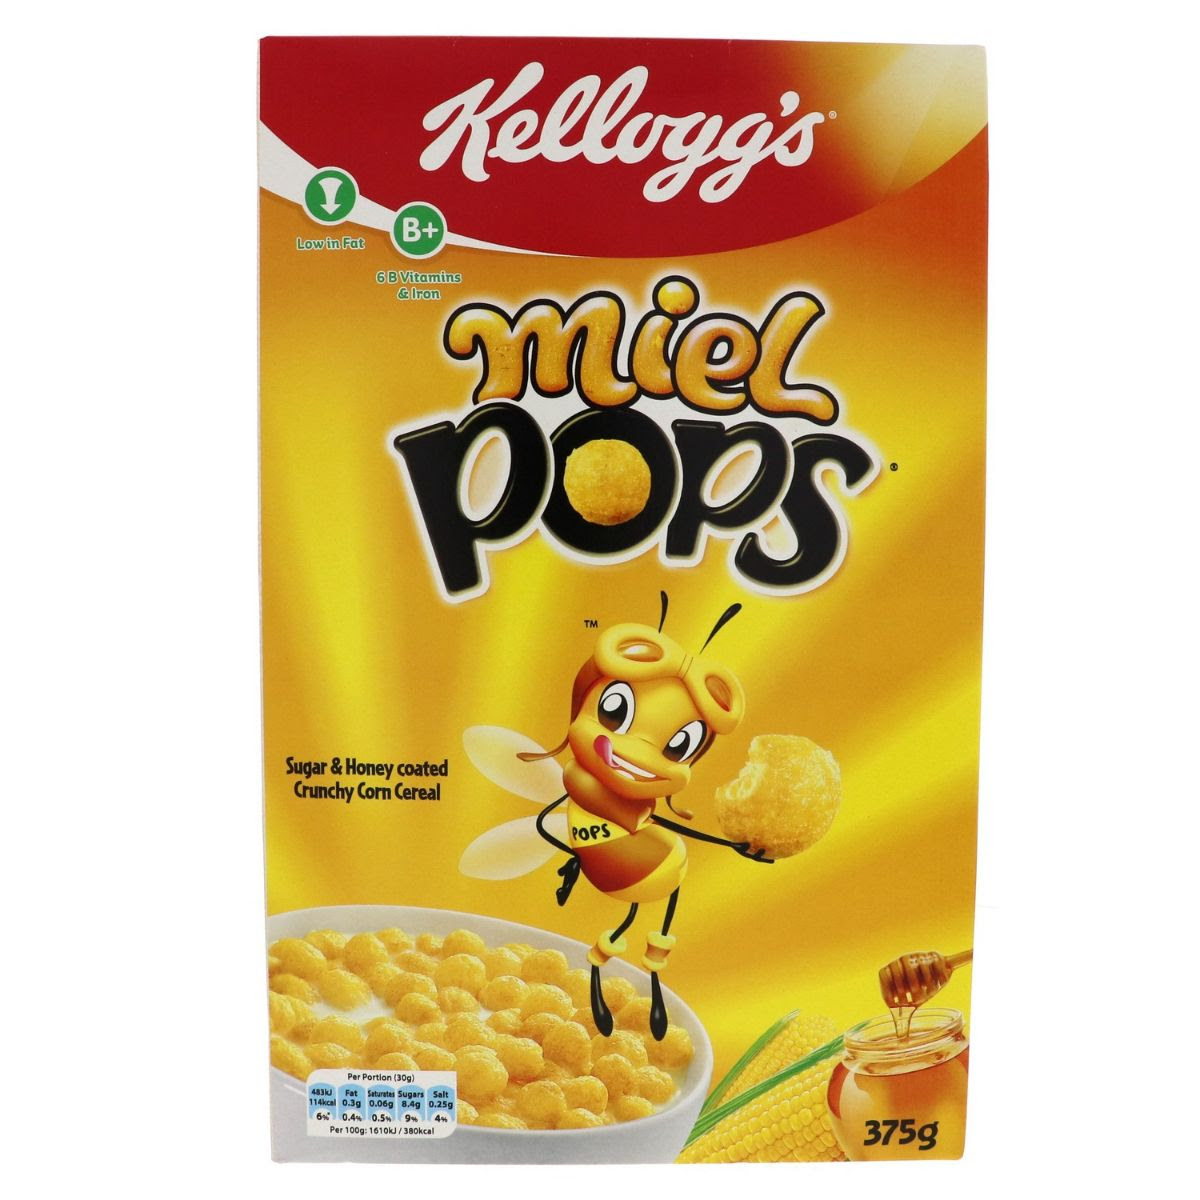 Kellogg's Corn Flakes Honey Pops 375g